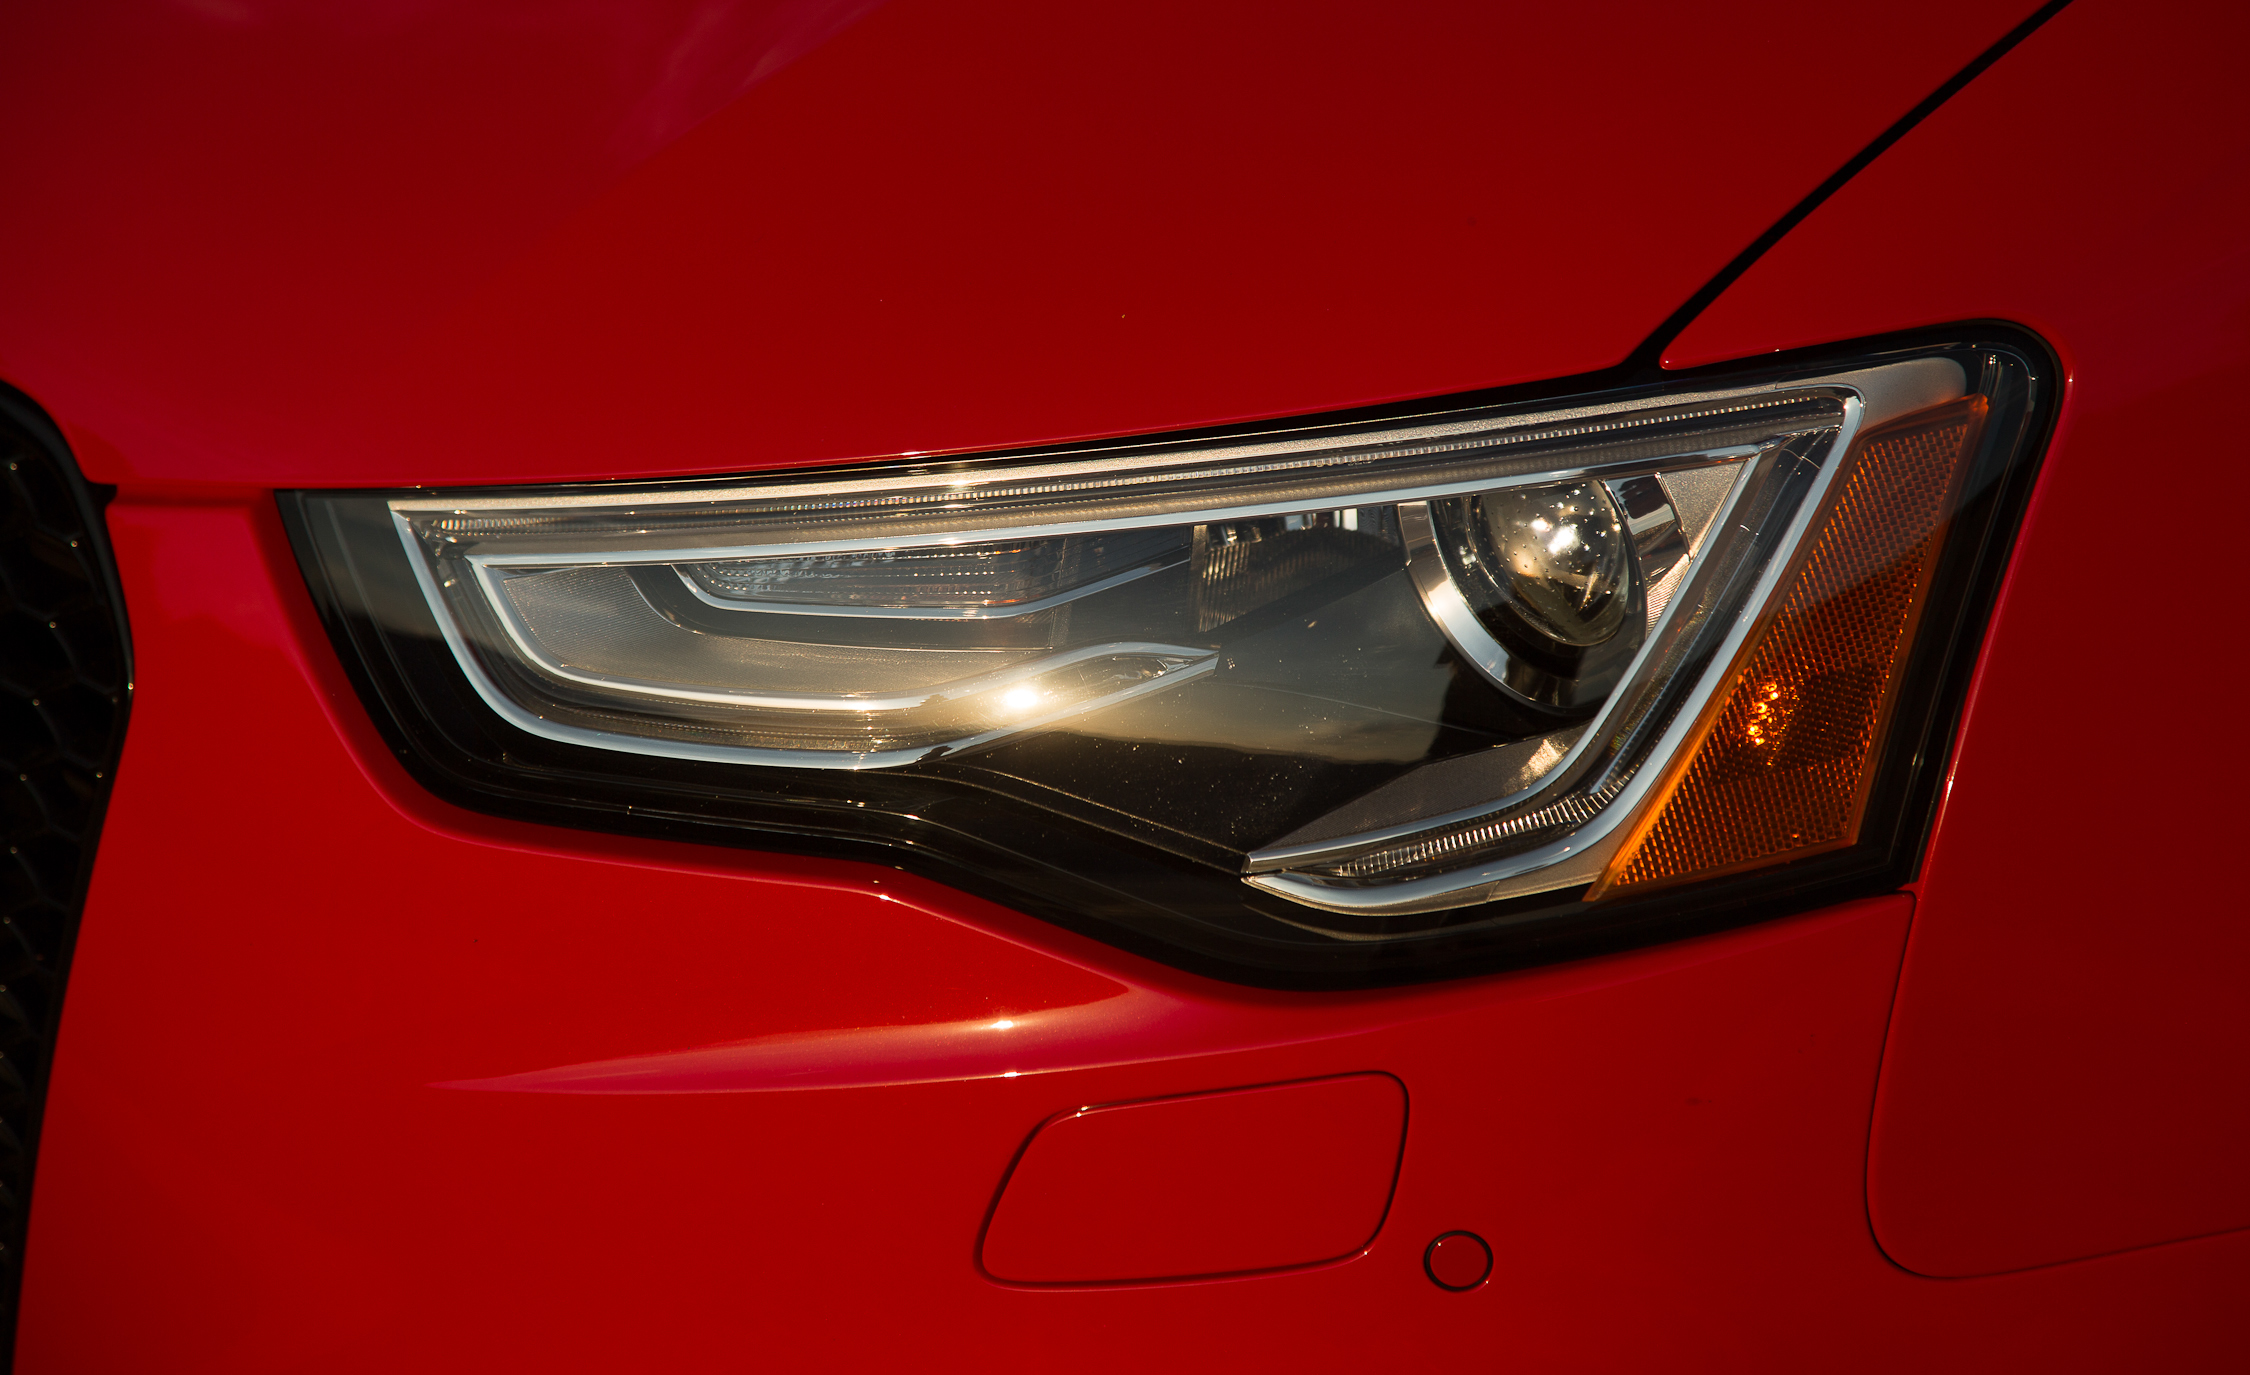 2013 Audi RS 5 Exterior View Headlamp (View 14 of 41)